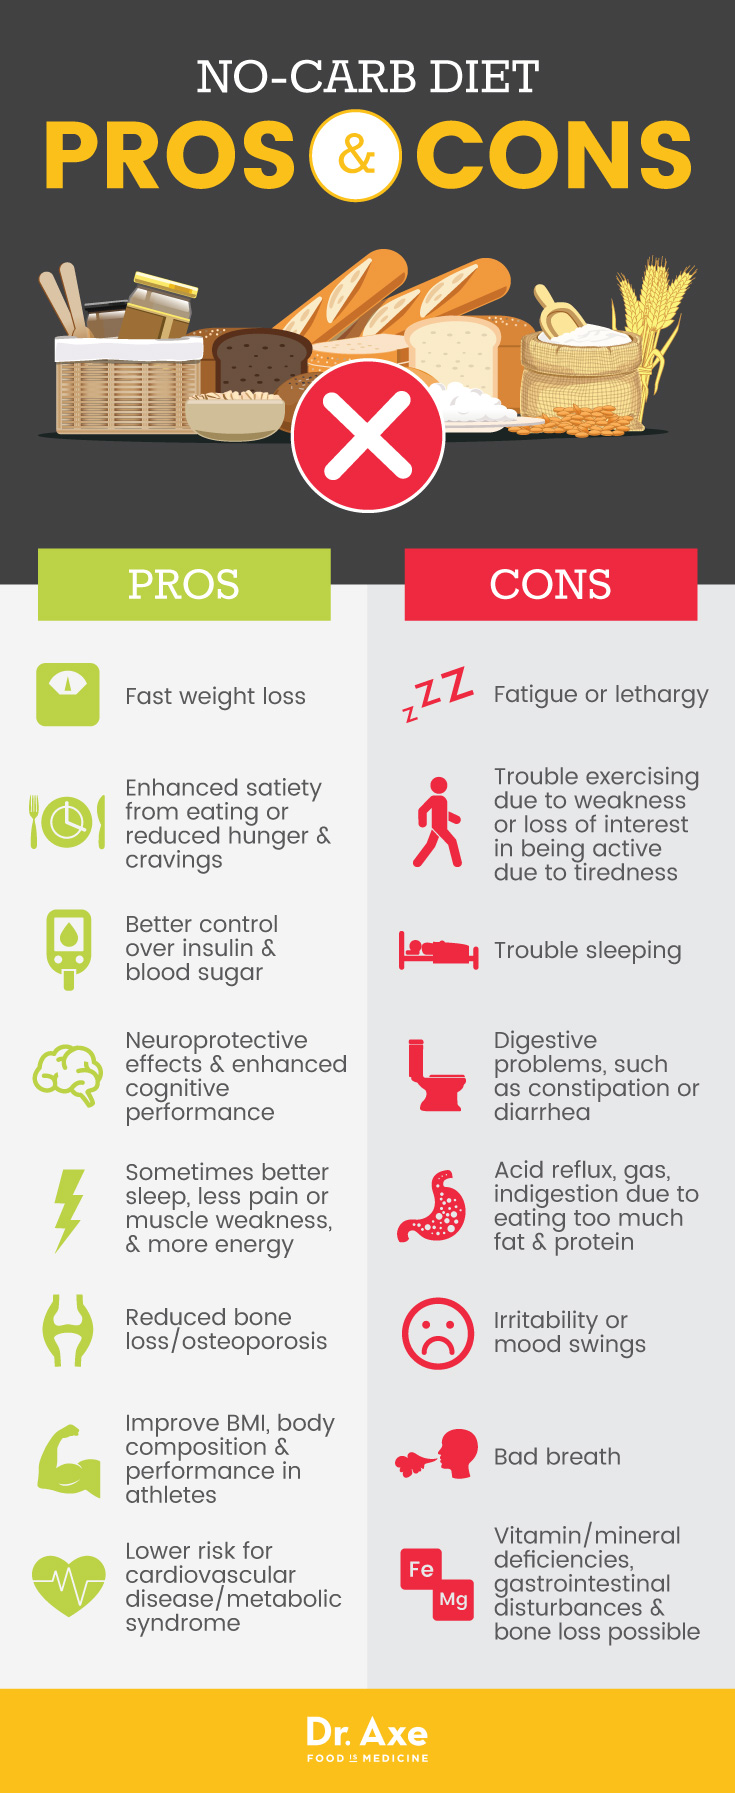 No-carb diet pros and cons - Dr. Axe